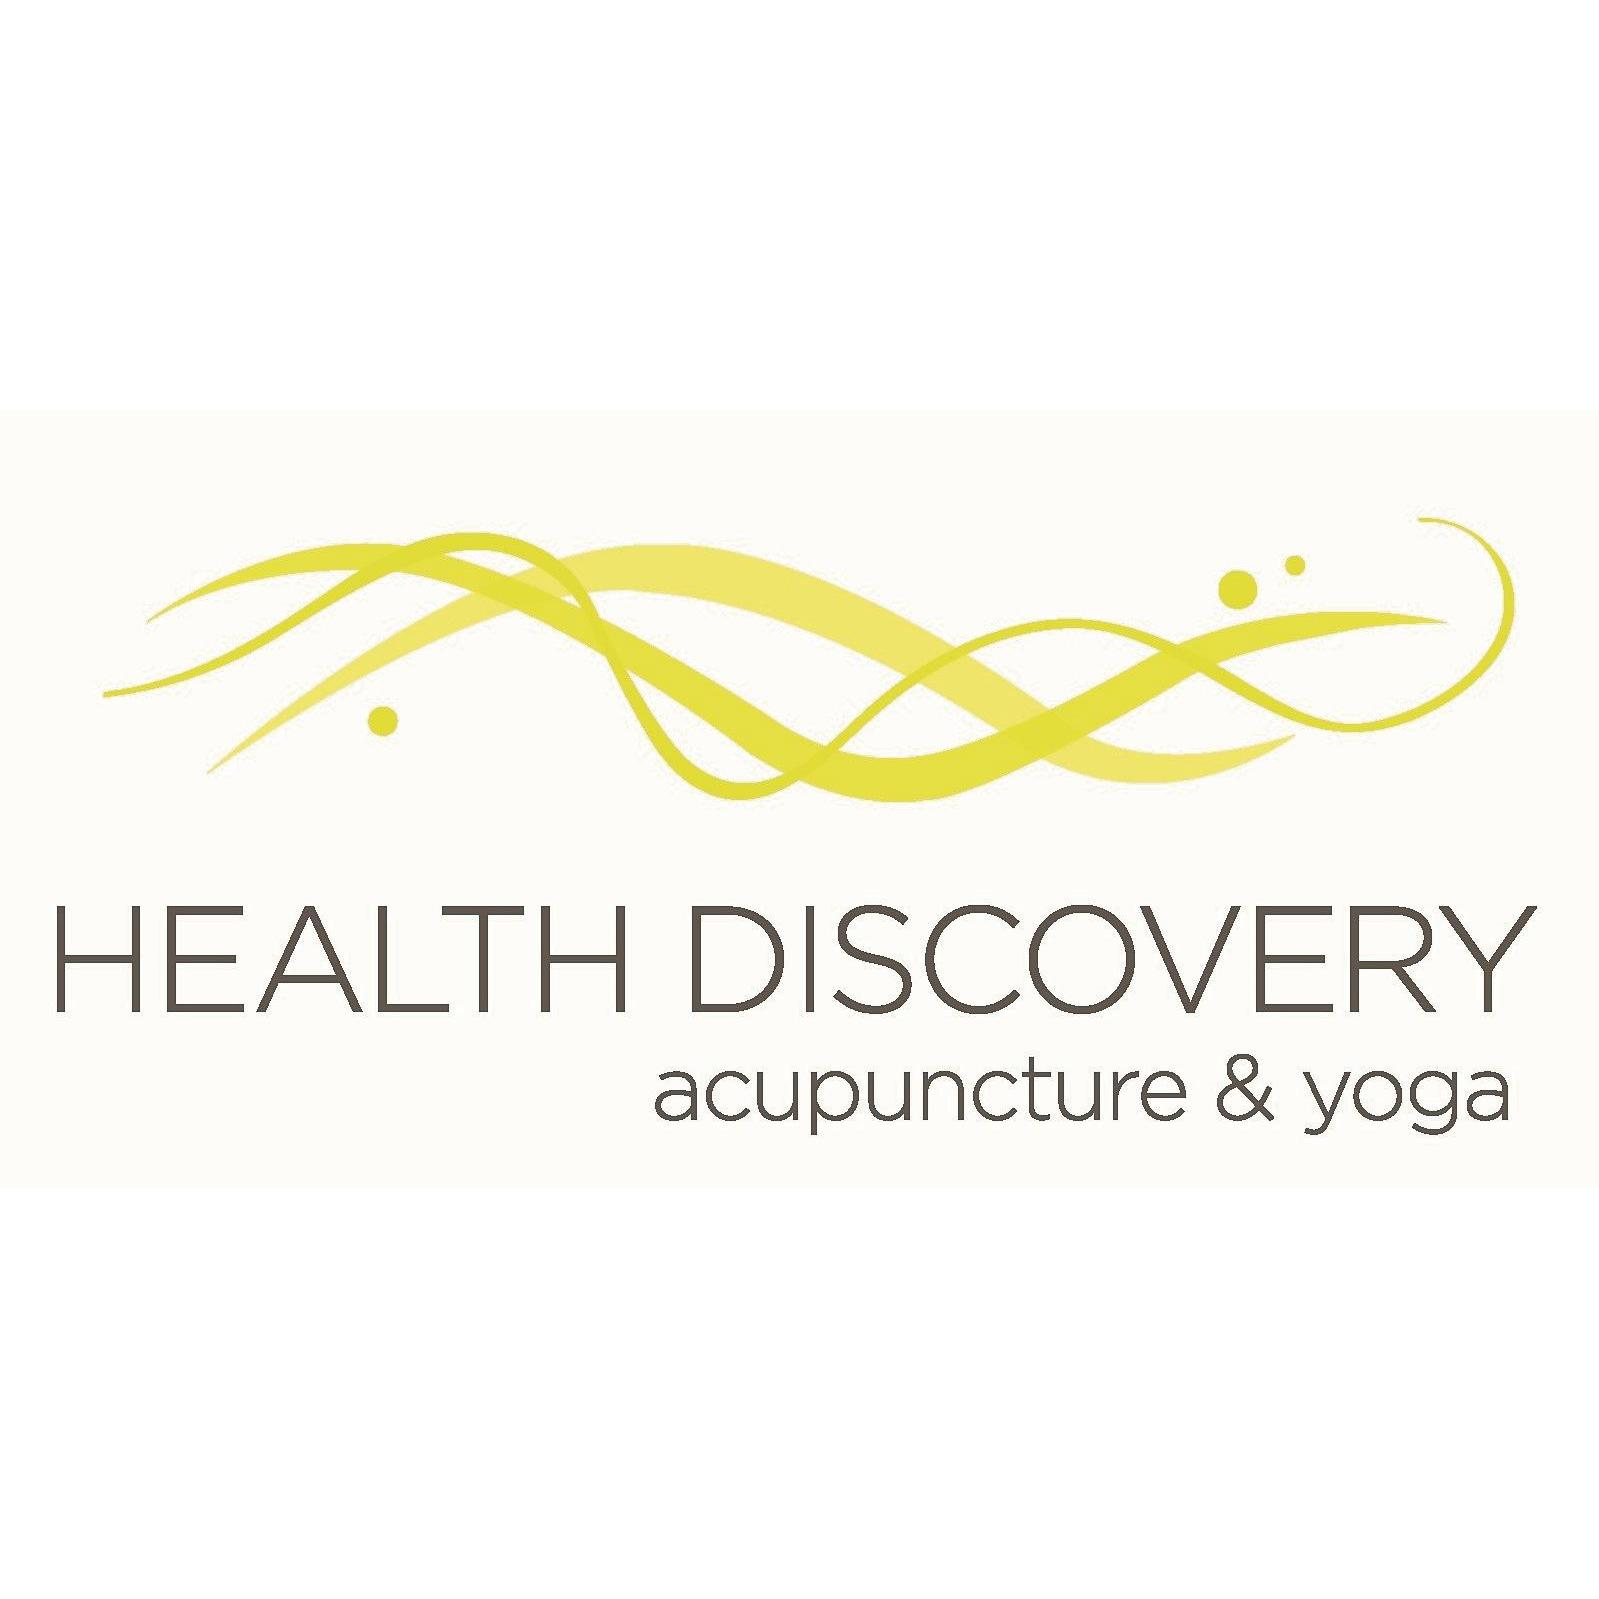 Health Discovery Acupuncture & Yoga, LLC. image 10